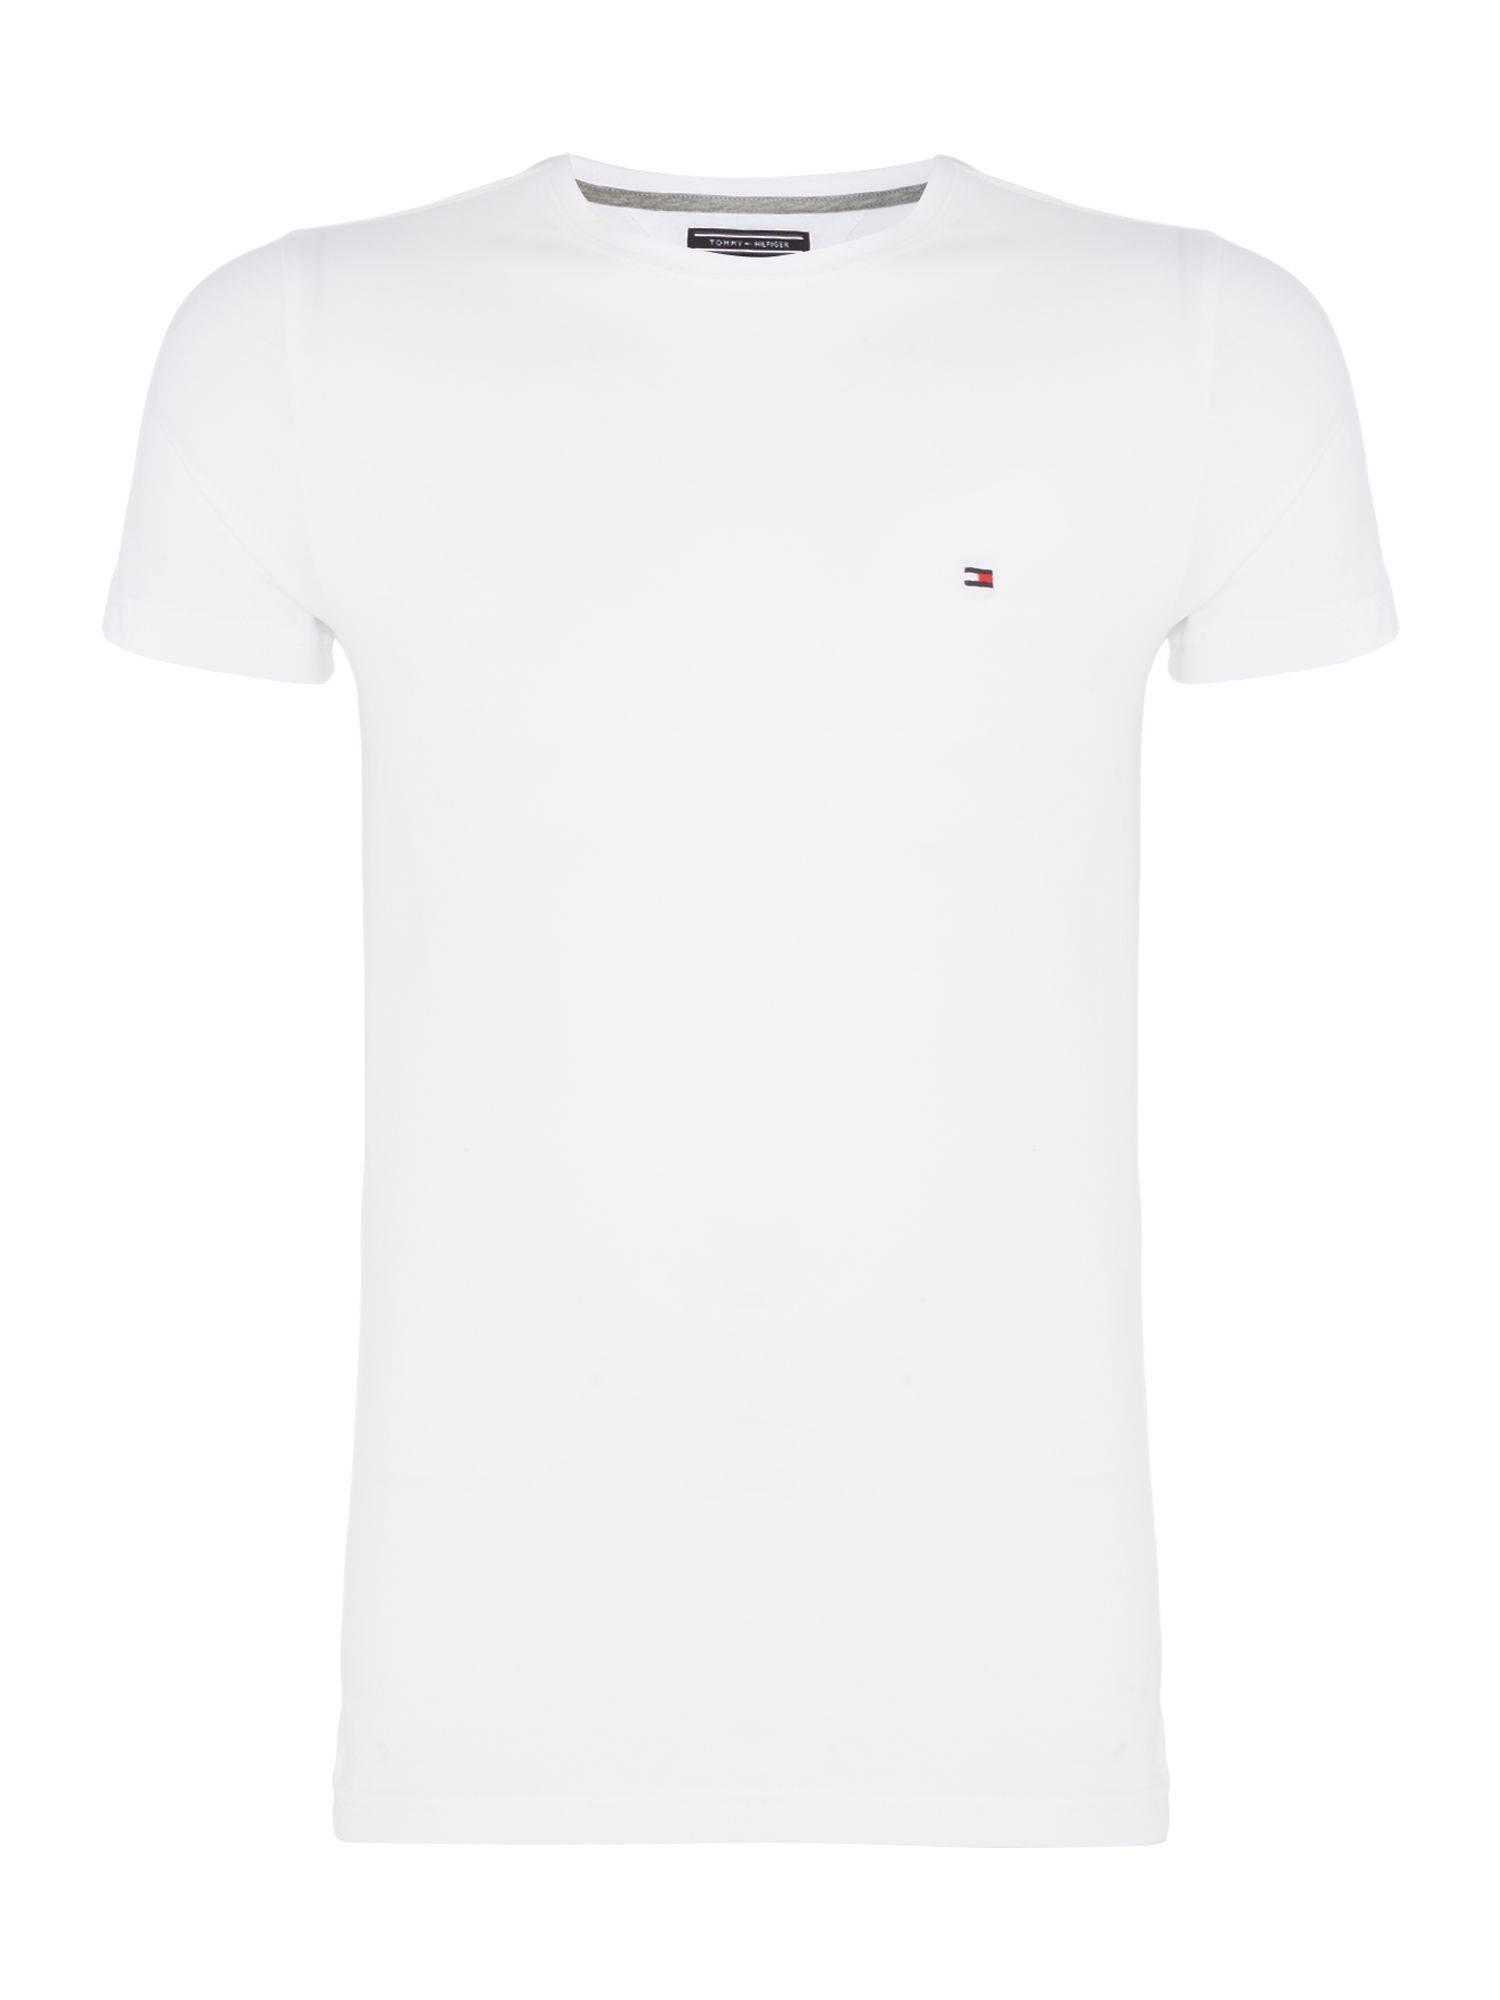 Men's Tommy Hilfiger New Stretch Top, White